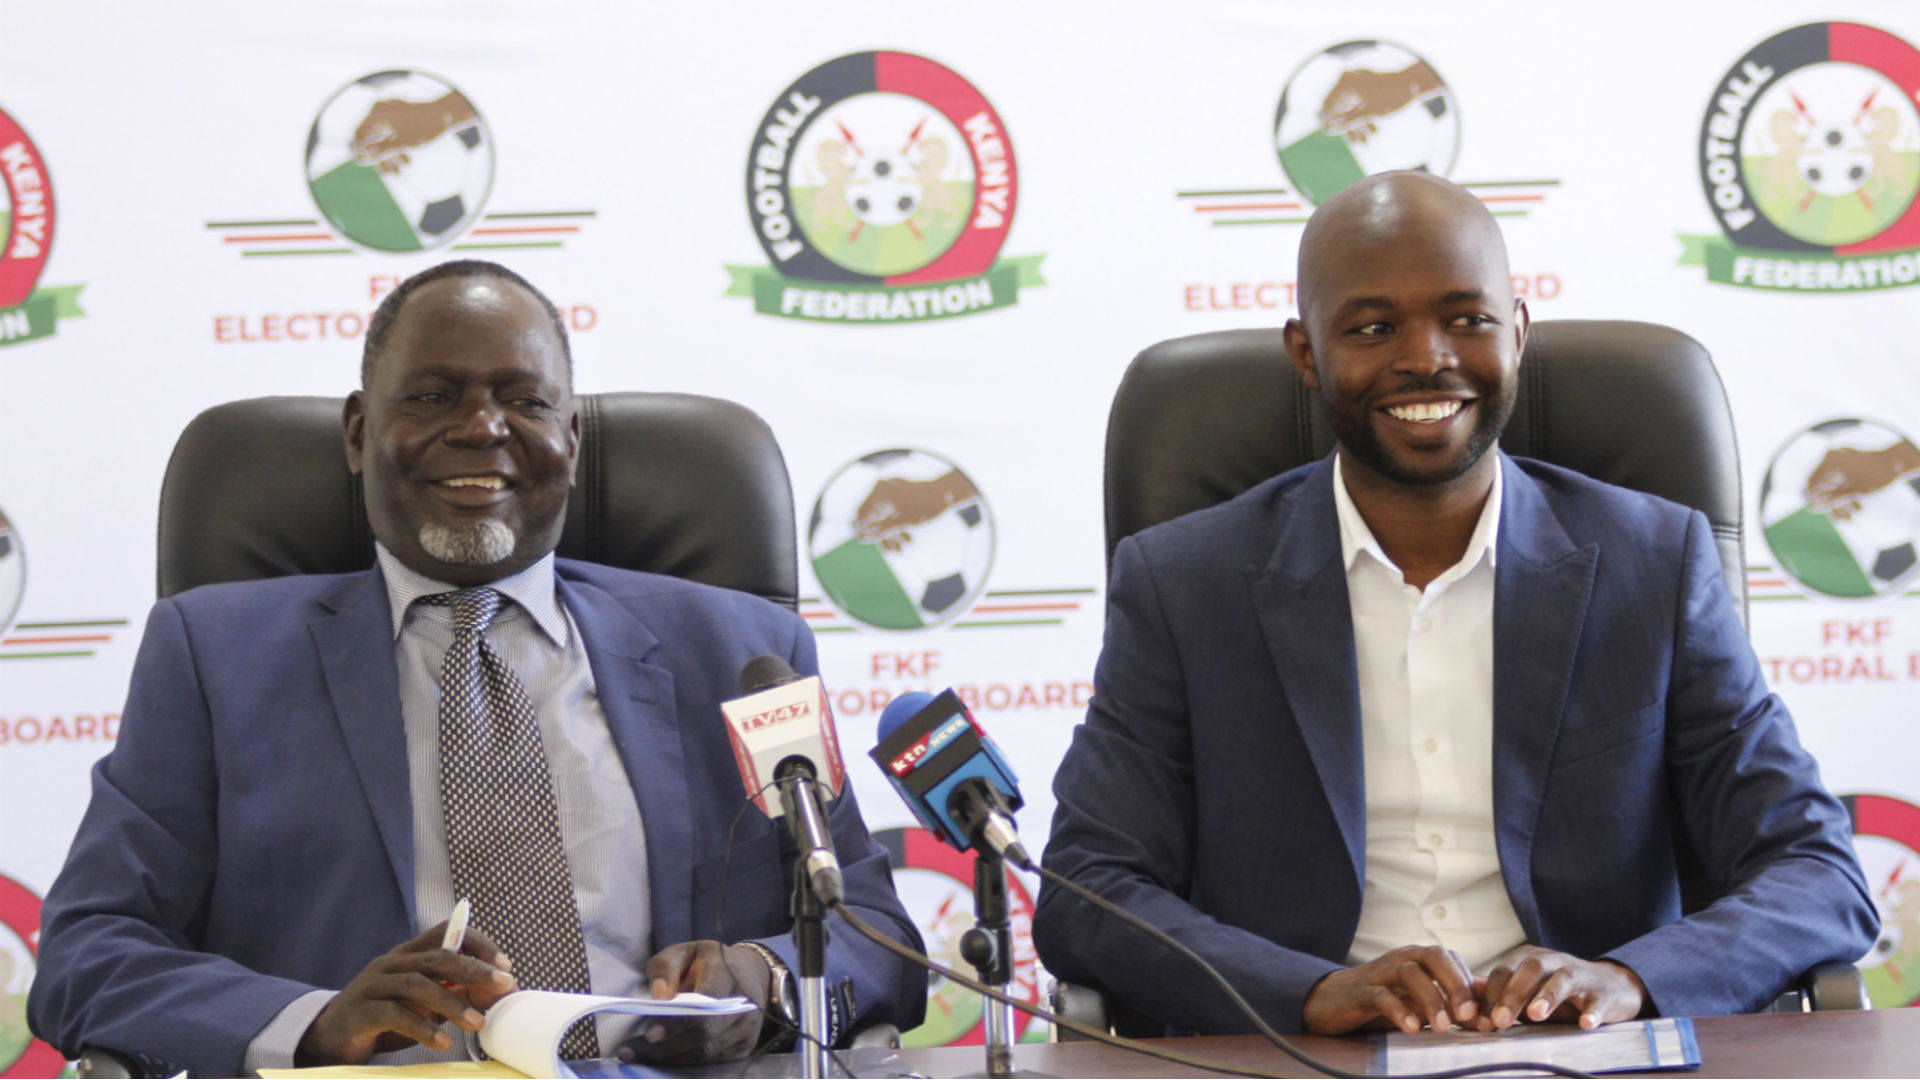 Electoral Board reveals venues for upcoming FKF country elections ...